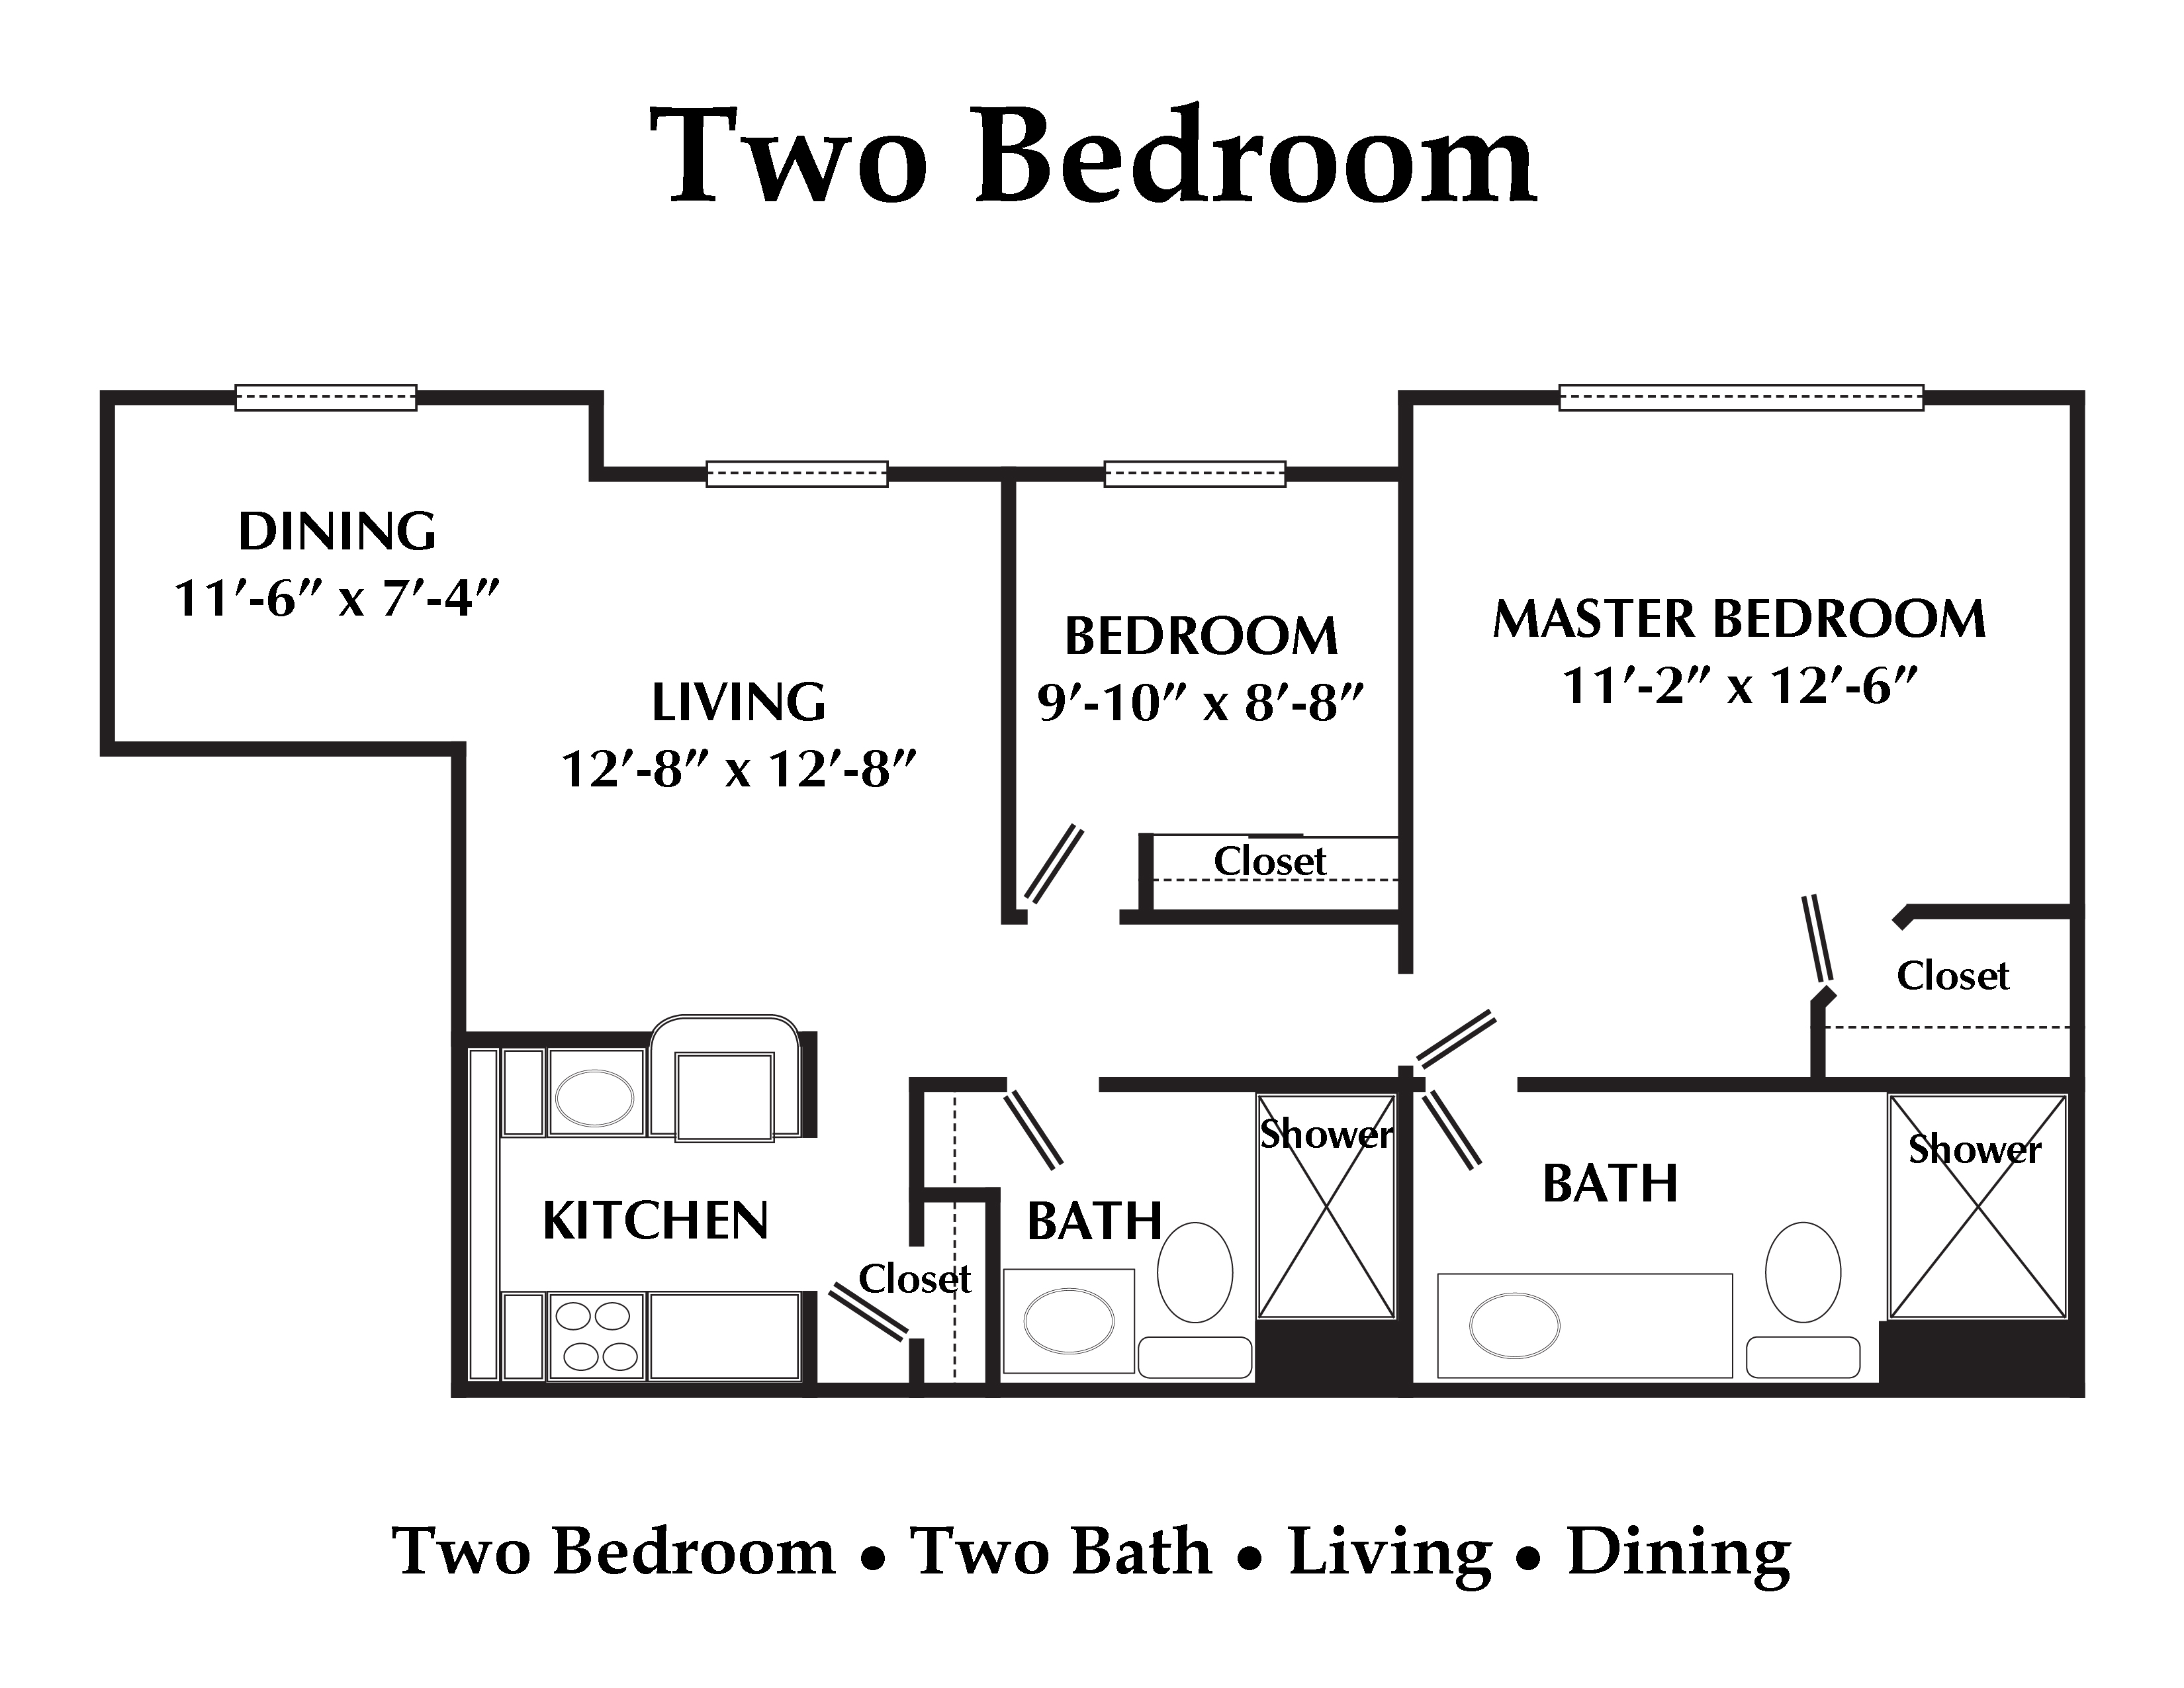 2 bedroom 2 bath apartment floor plans house plans for 2 bedroom 2 bath apartment floor plans